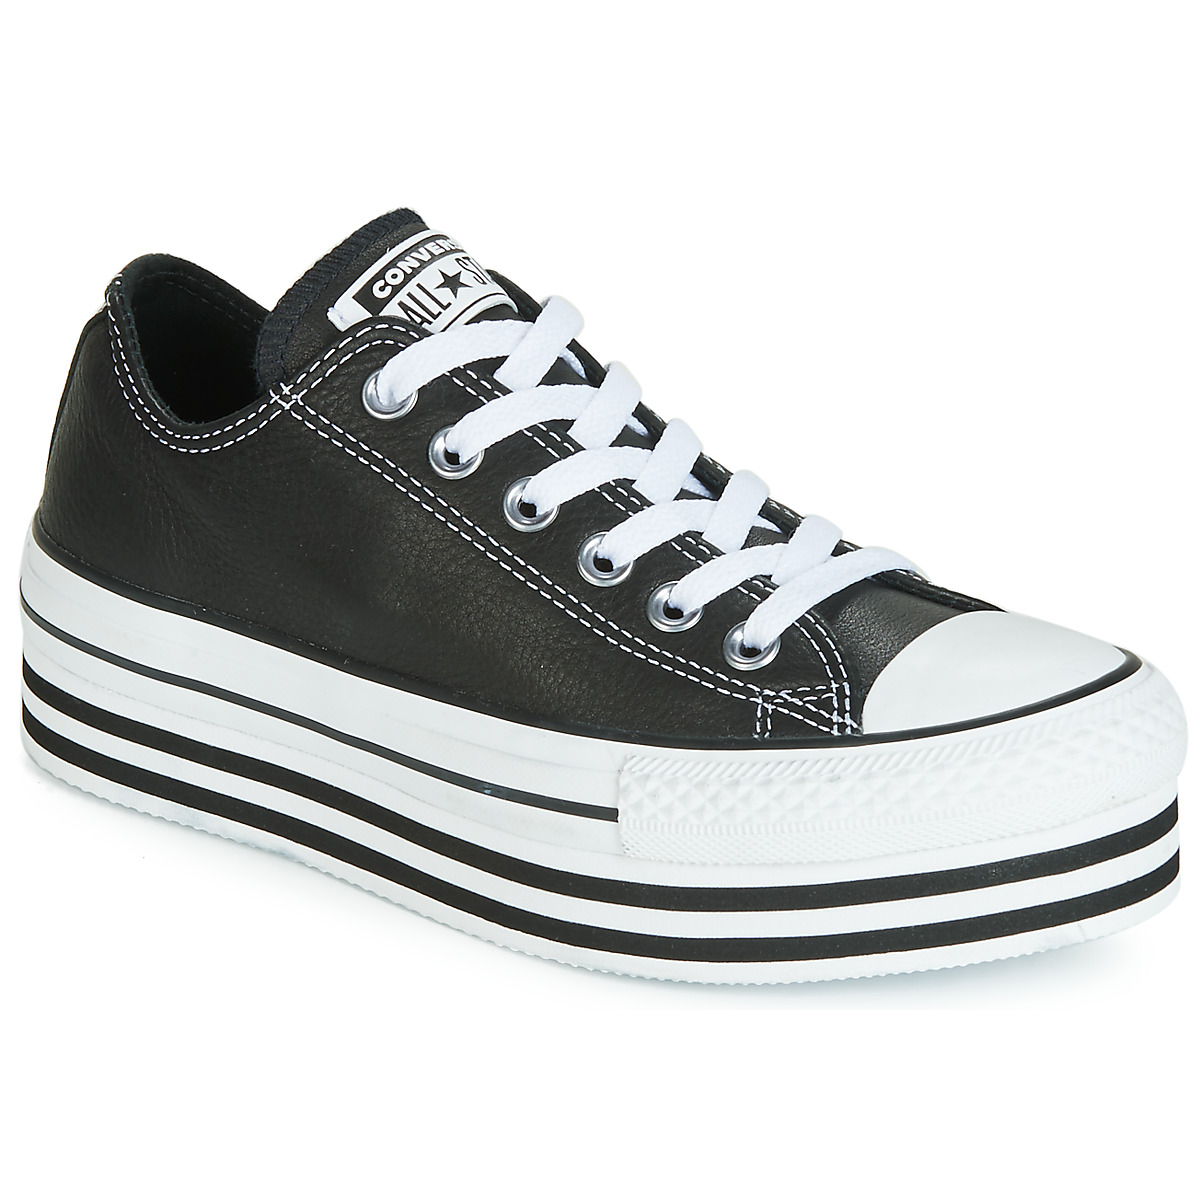 CHUCK TAYLOR ALL STAR LAYER BOTTOM LEATHER OX